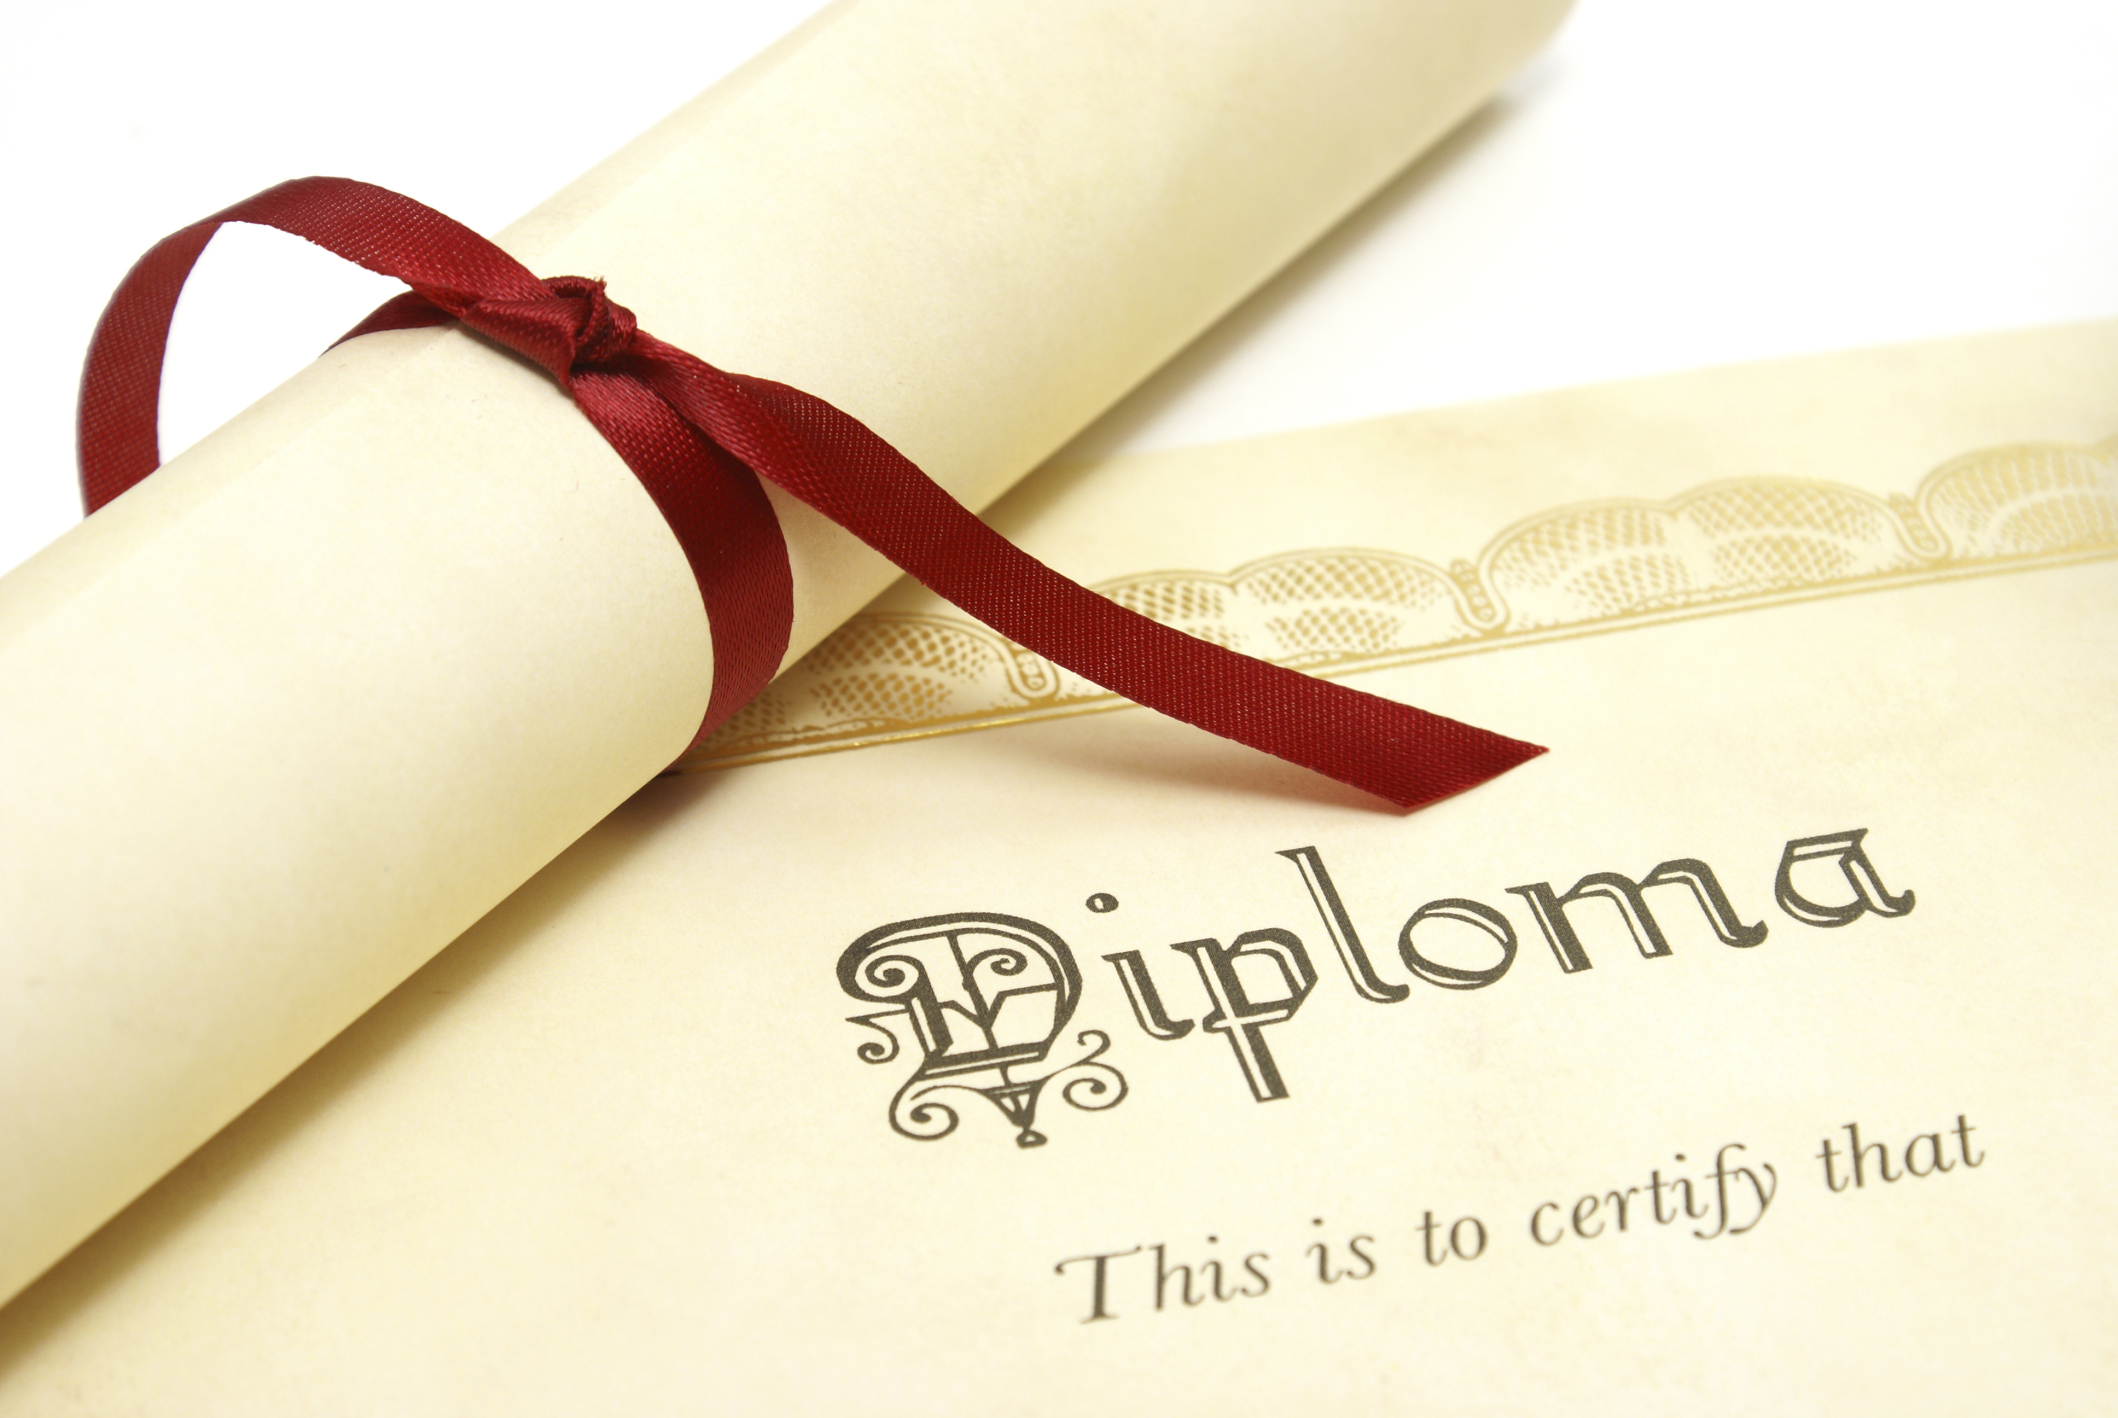 to get a diploma degree that too with no or very little academic work is wished by many people across the nation when you can get a fake ged diploma